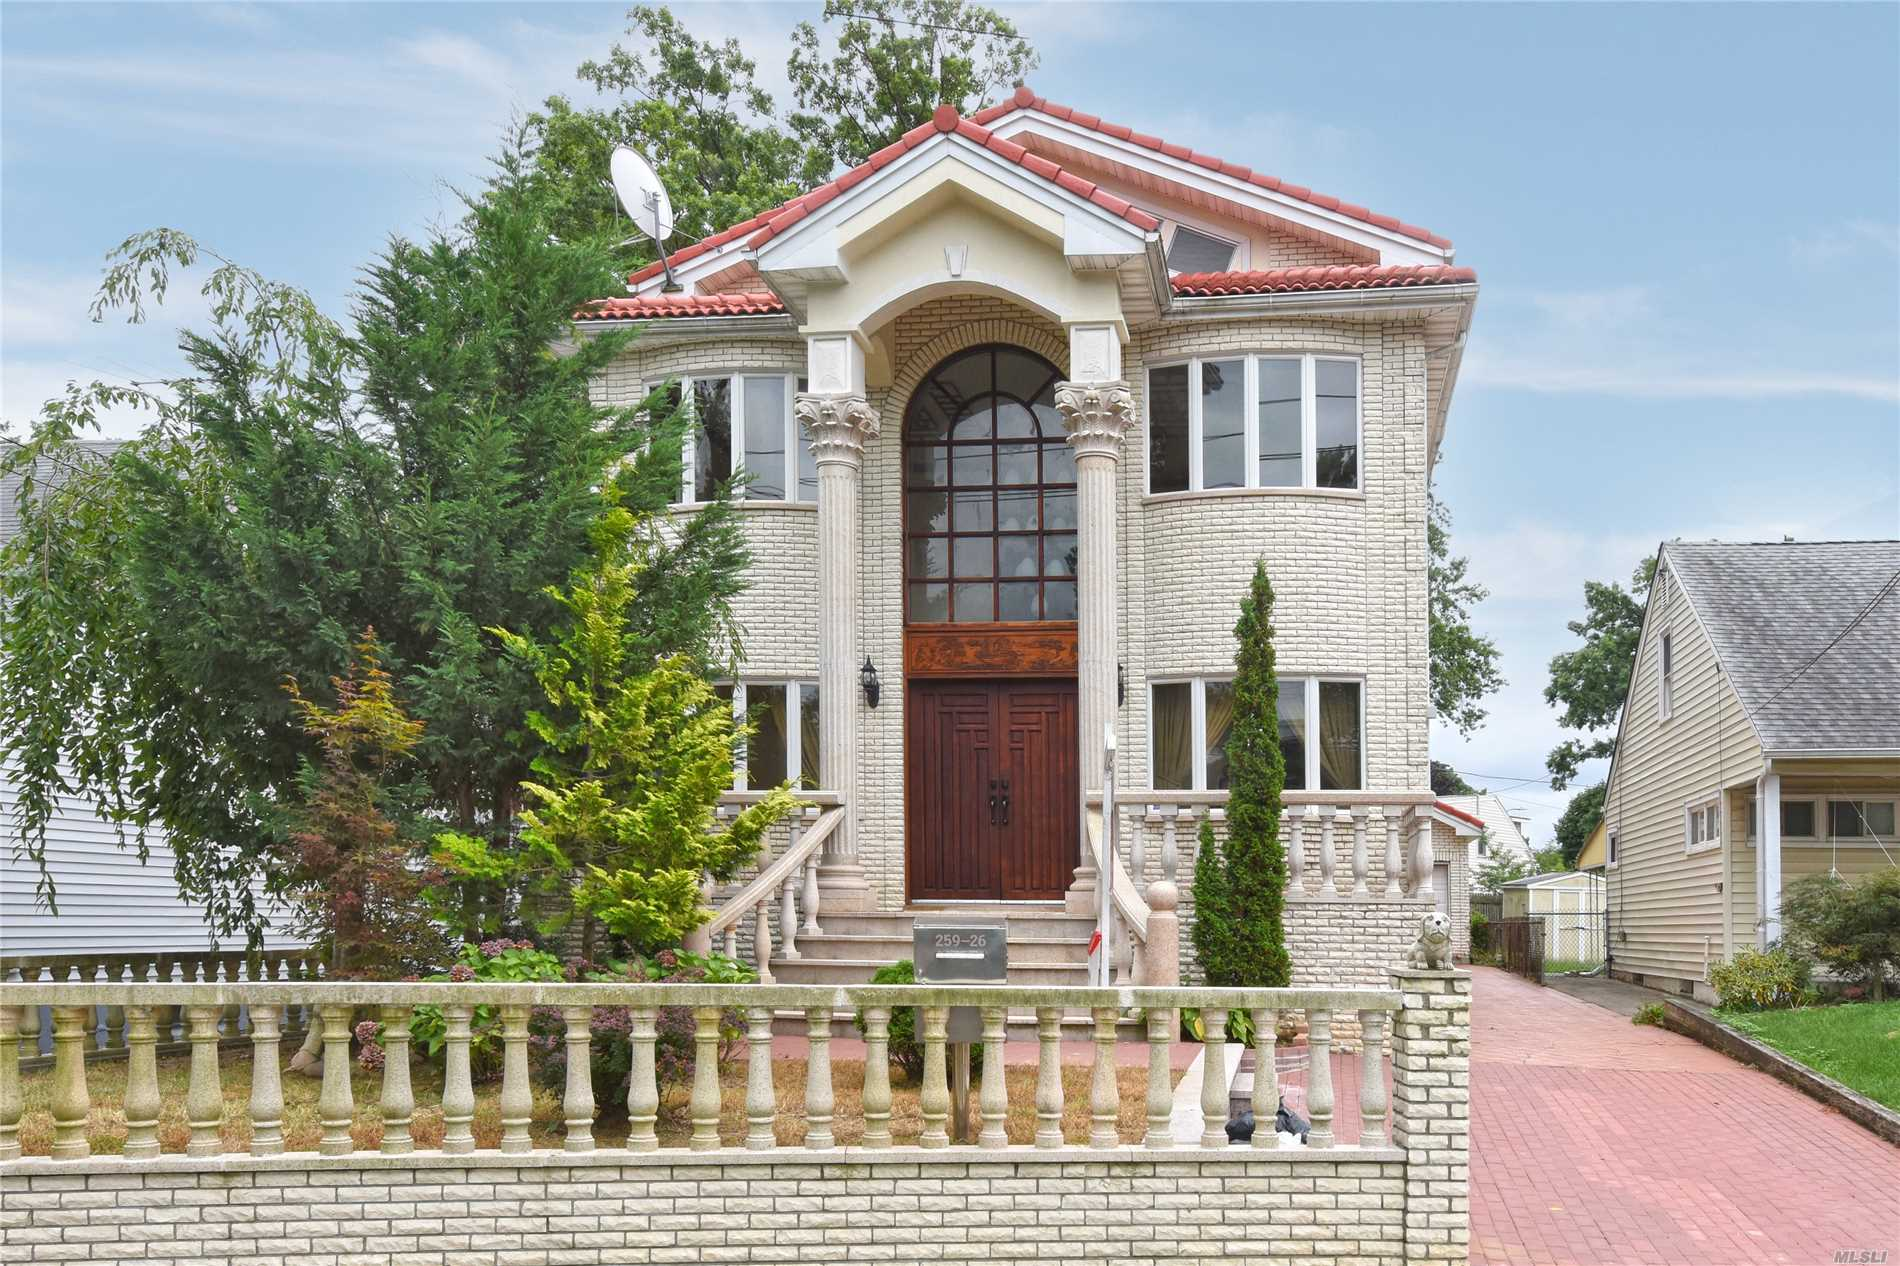 Built With Quality Material! This Regal Custom Rebuilt Features: Grand Entry Foyer W/ Double Height Ceiling, Custom Molding, Cherry Wood Floors, 5 Spacious Bedrooms, 4 Baths & Jacuzzi, Newly Renovated Eat-In Kitchen, Sun-Drenched Loft, High-Ceiling Finished Basement W/Separate Entrance-Perfect Layout For Entertainment! See To Believe! Near-All | School# 26: Ps 221& Jhs 067